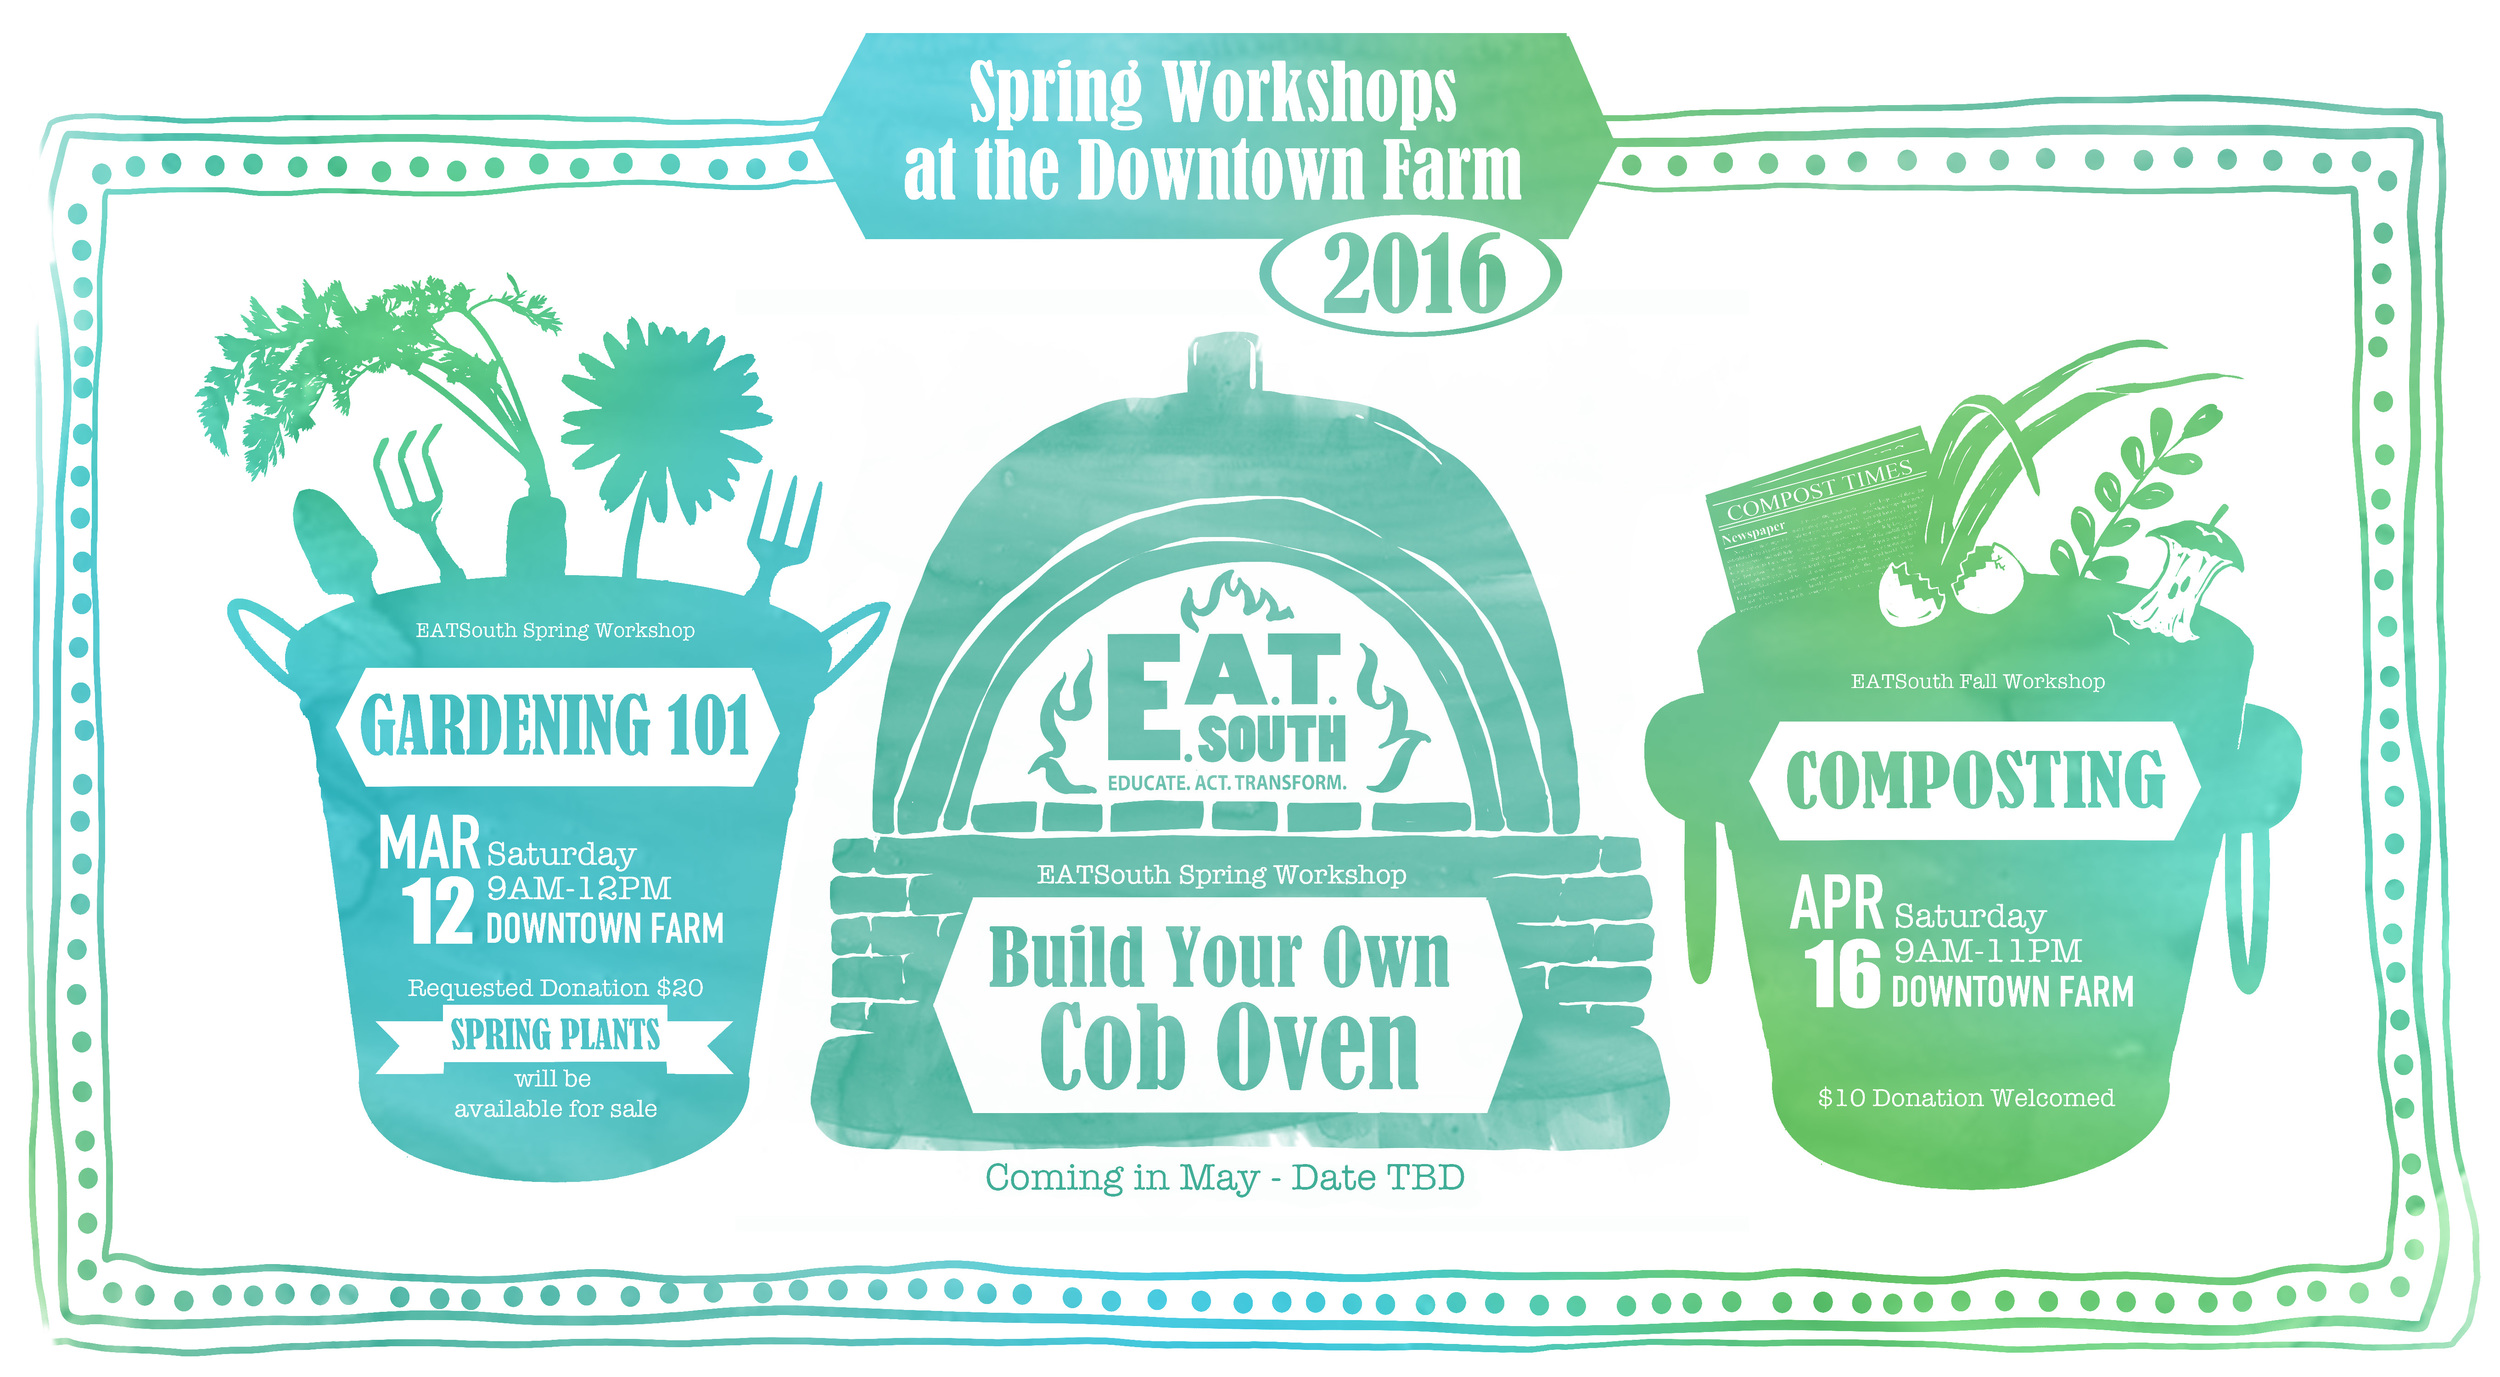 All workshops are hosted at the Downtown Farm located at 485 Molton St in the rear parking lot of the Montgomery Advertiser. Please RSVP to info@eatsouth.org